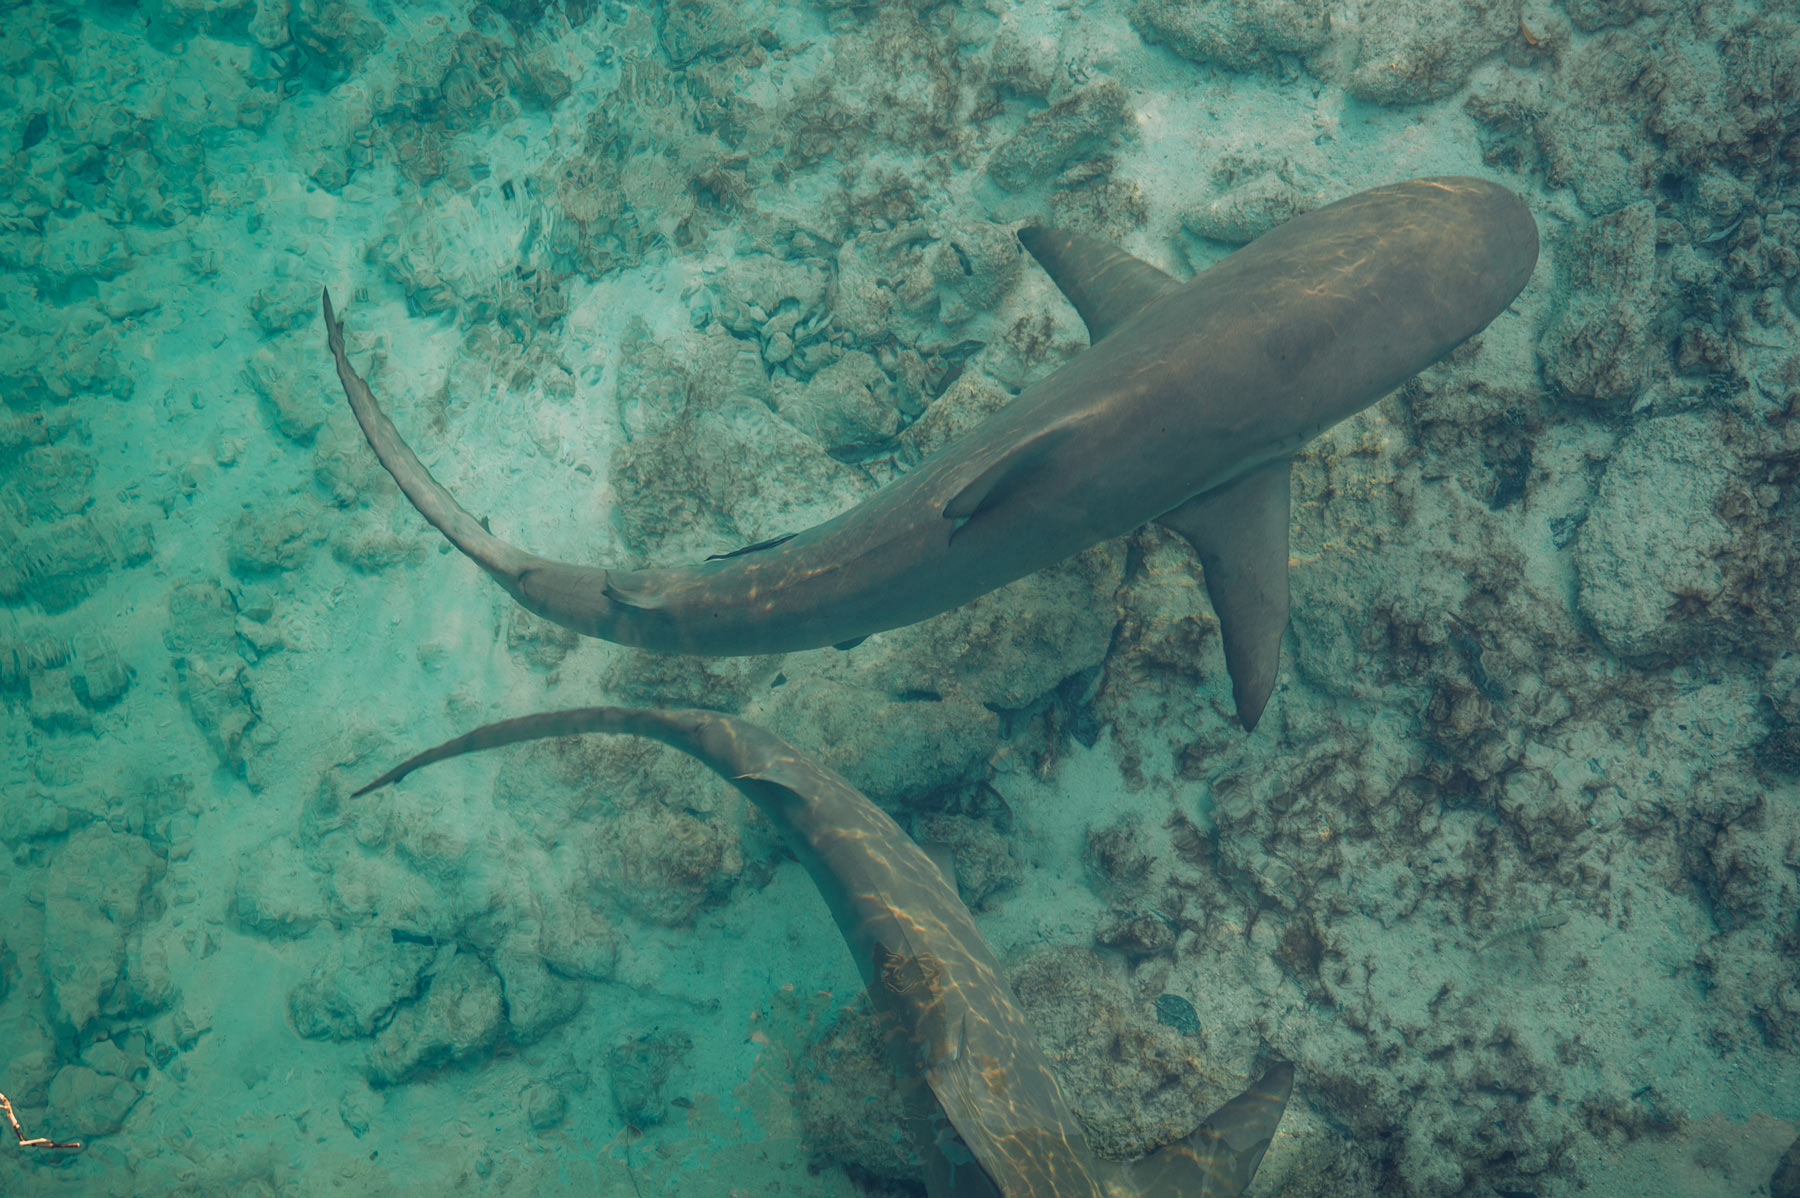 Hawks Nest Requins, Cat Island, Bahamas